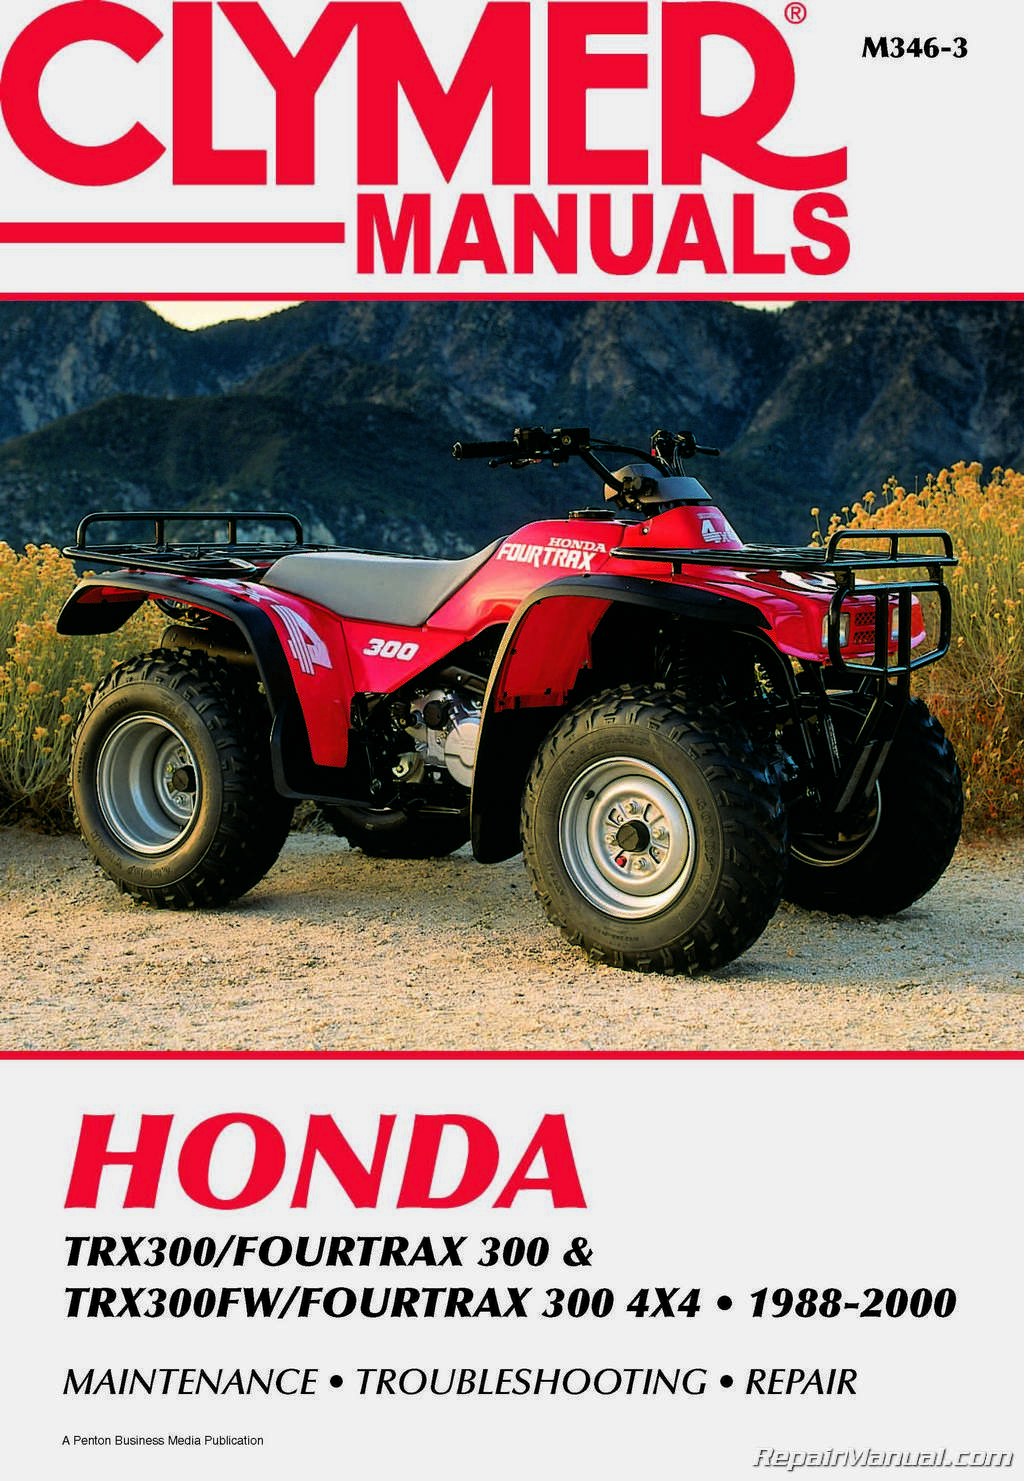 Honda TRX 300 Fourtrax 300 TRX300FW Fourtrax 4×4 1988-2000 Clymer ATV Repair  Manual